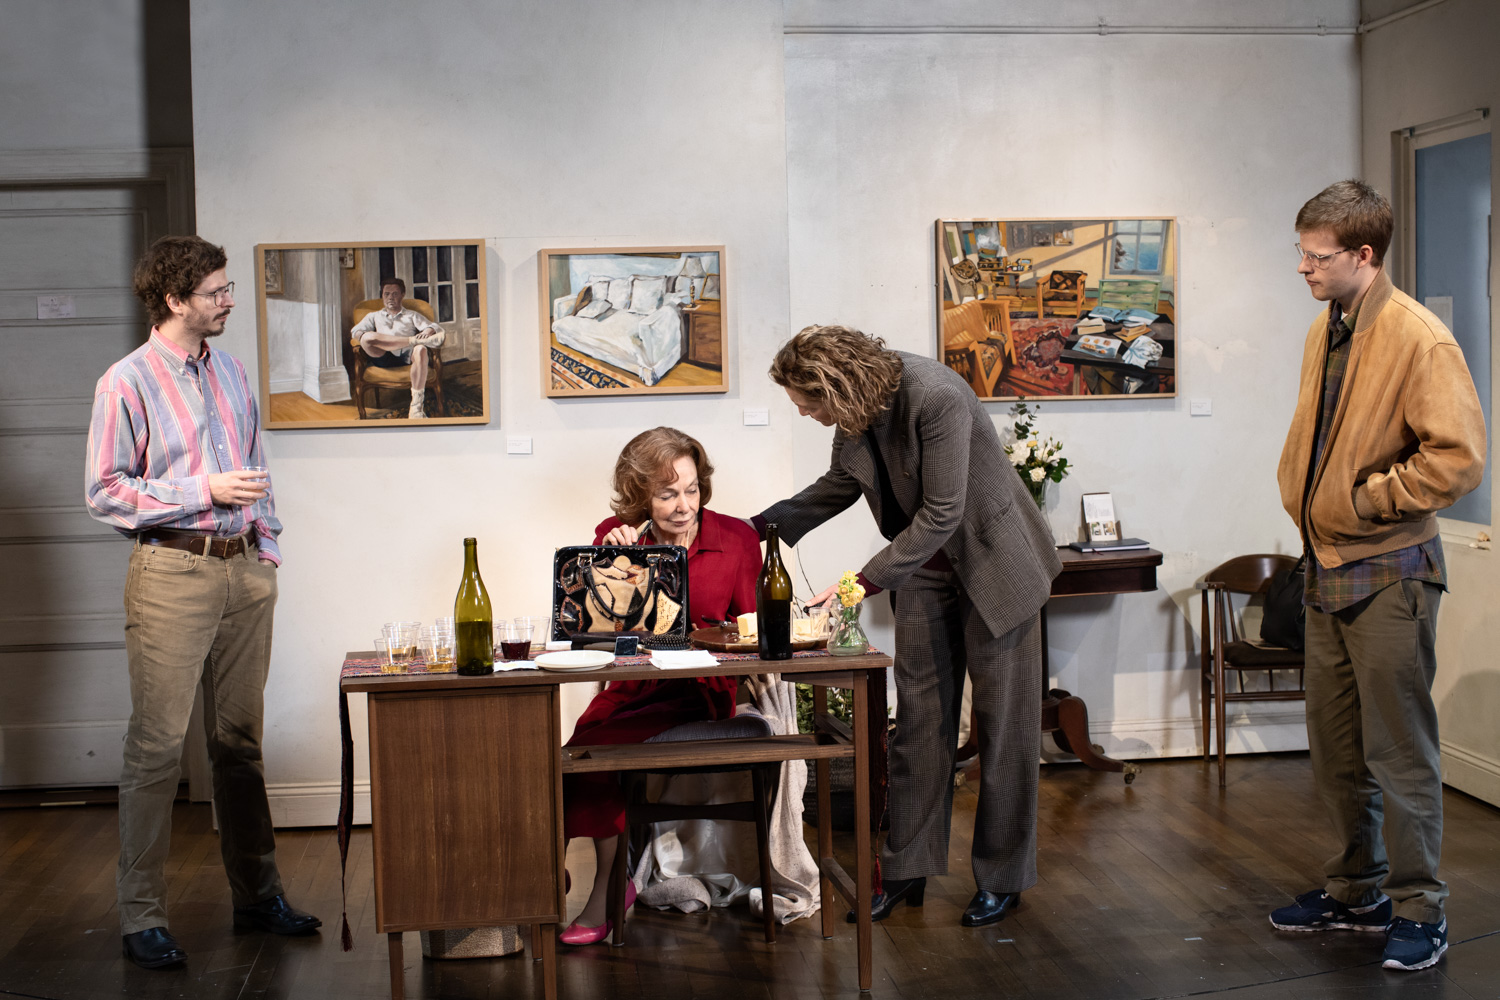 The Waverly Gallery, 2018 Michael Cera, Elaine May, Joan Allen, Lucas Hedges